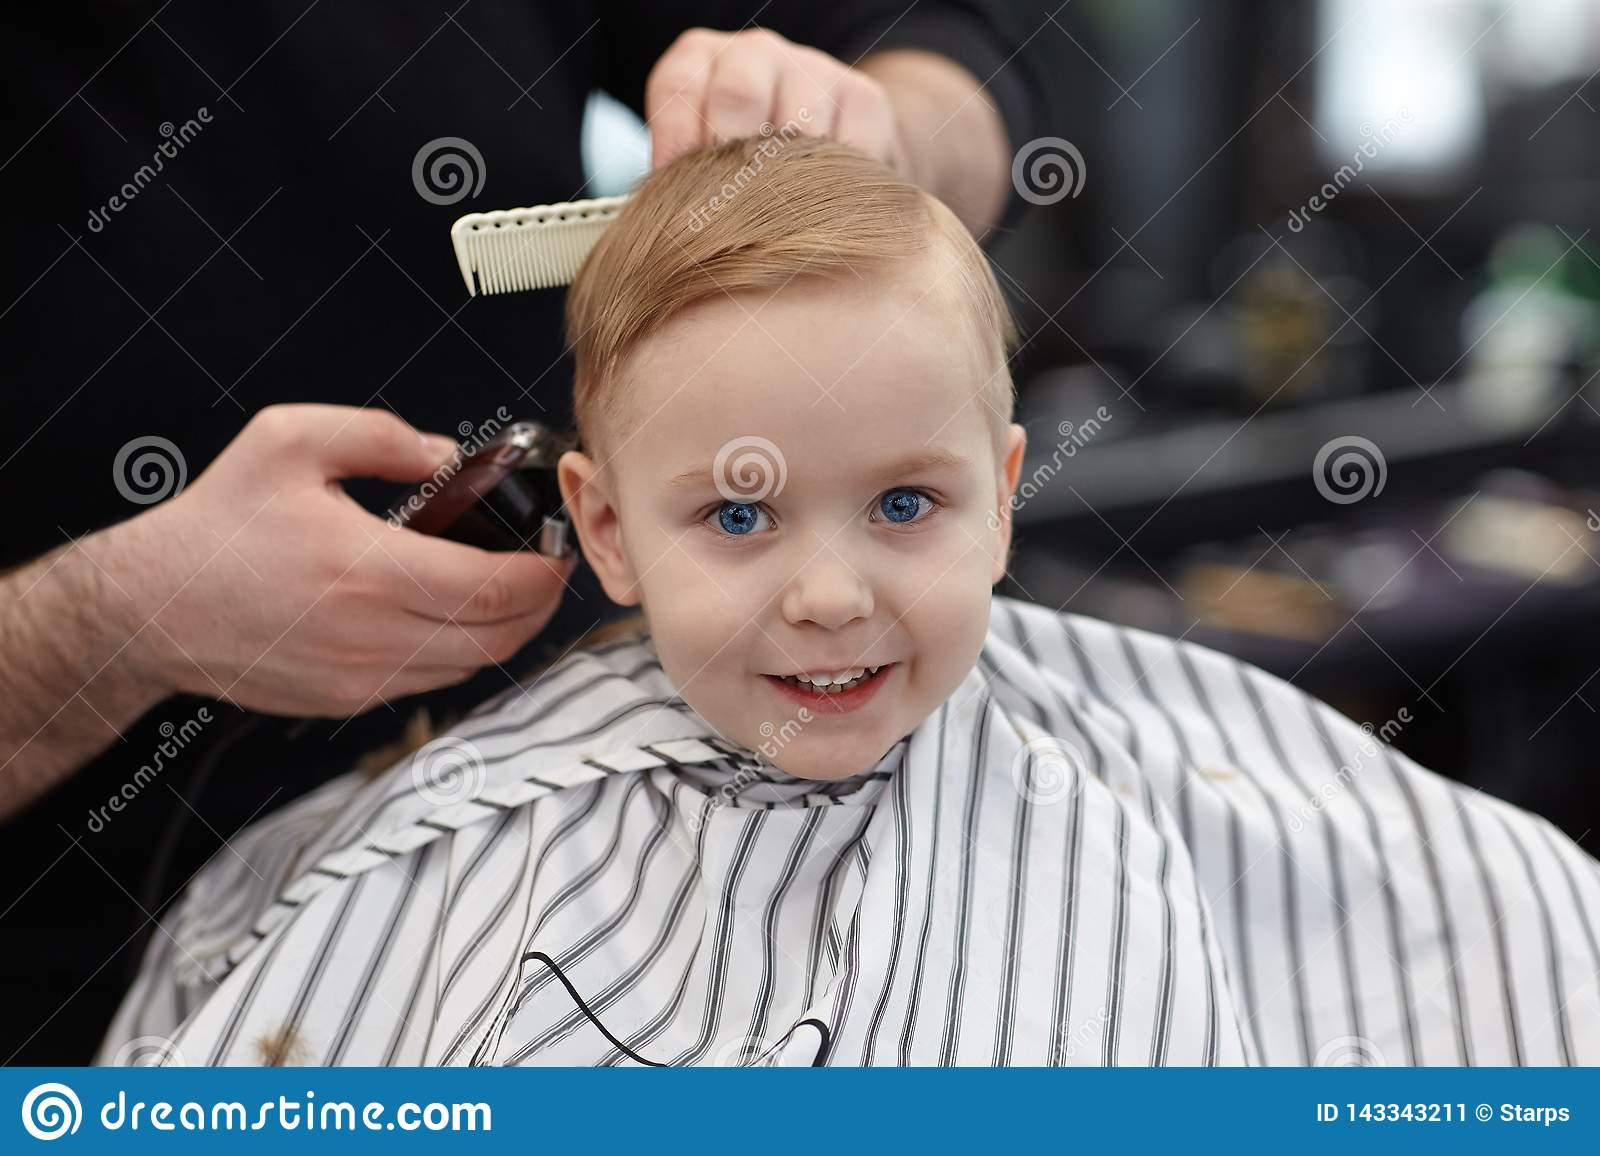 Cute blond smiling baby boy with blue eyes in a barber shop having haircut by hairdresser. Hands of stylist with tools. Children`s